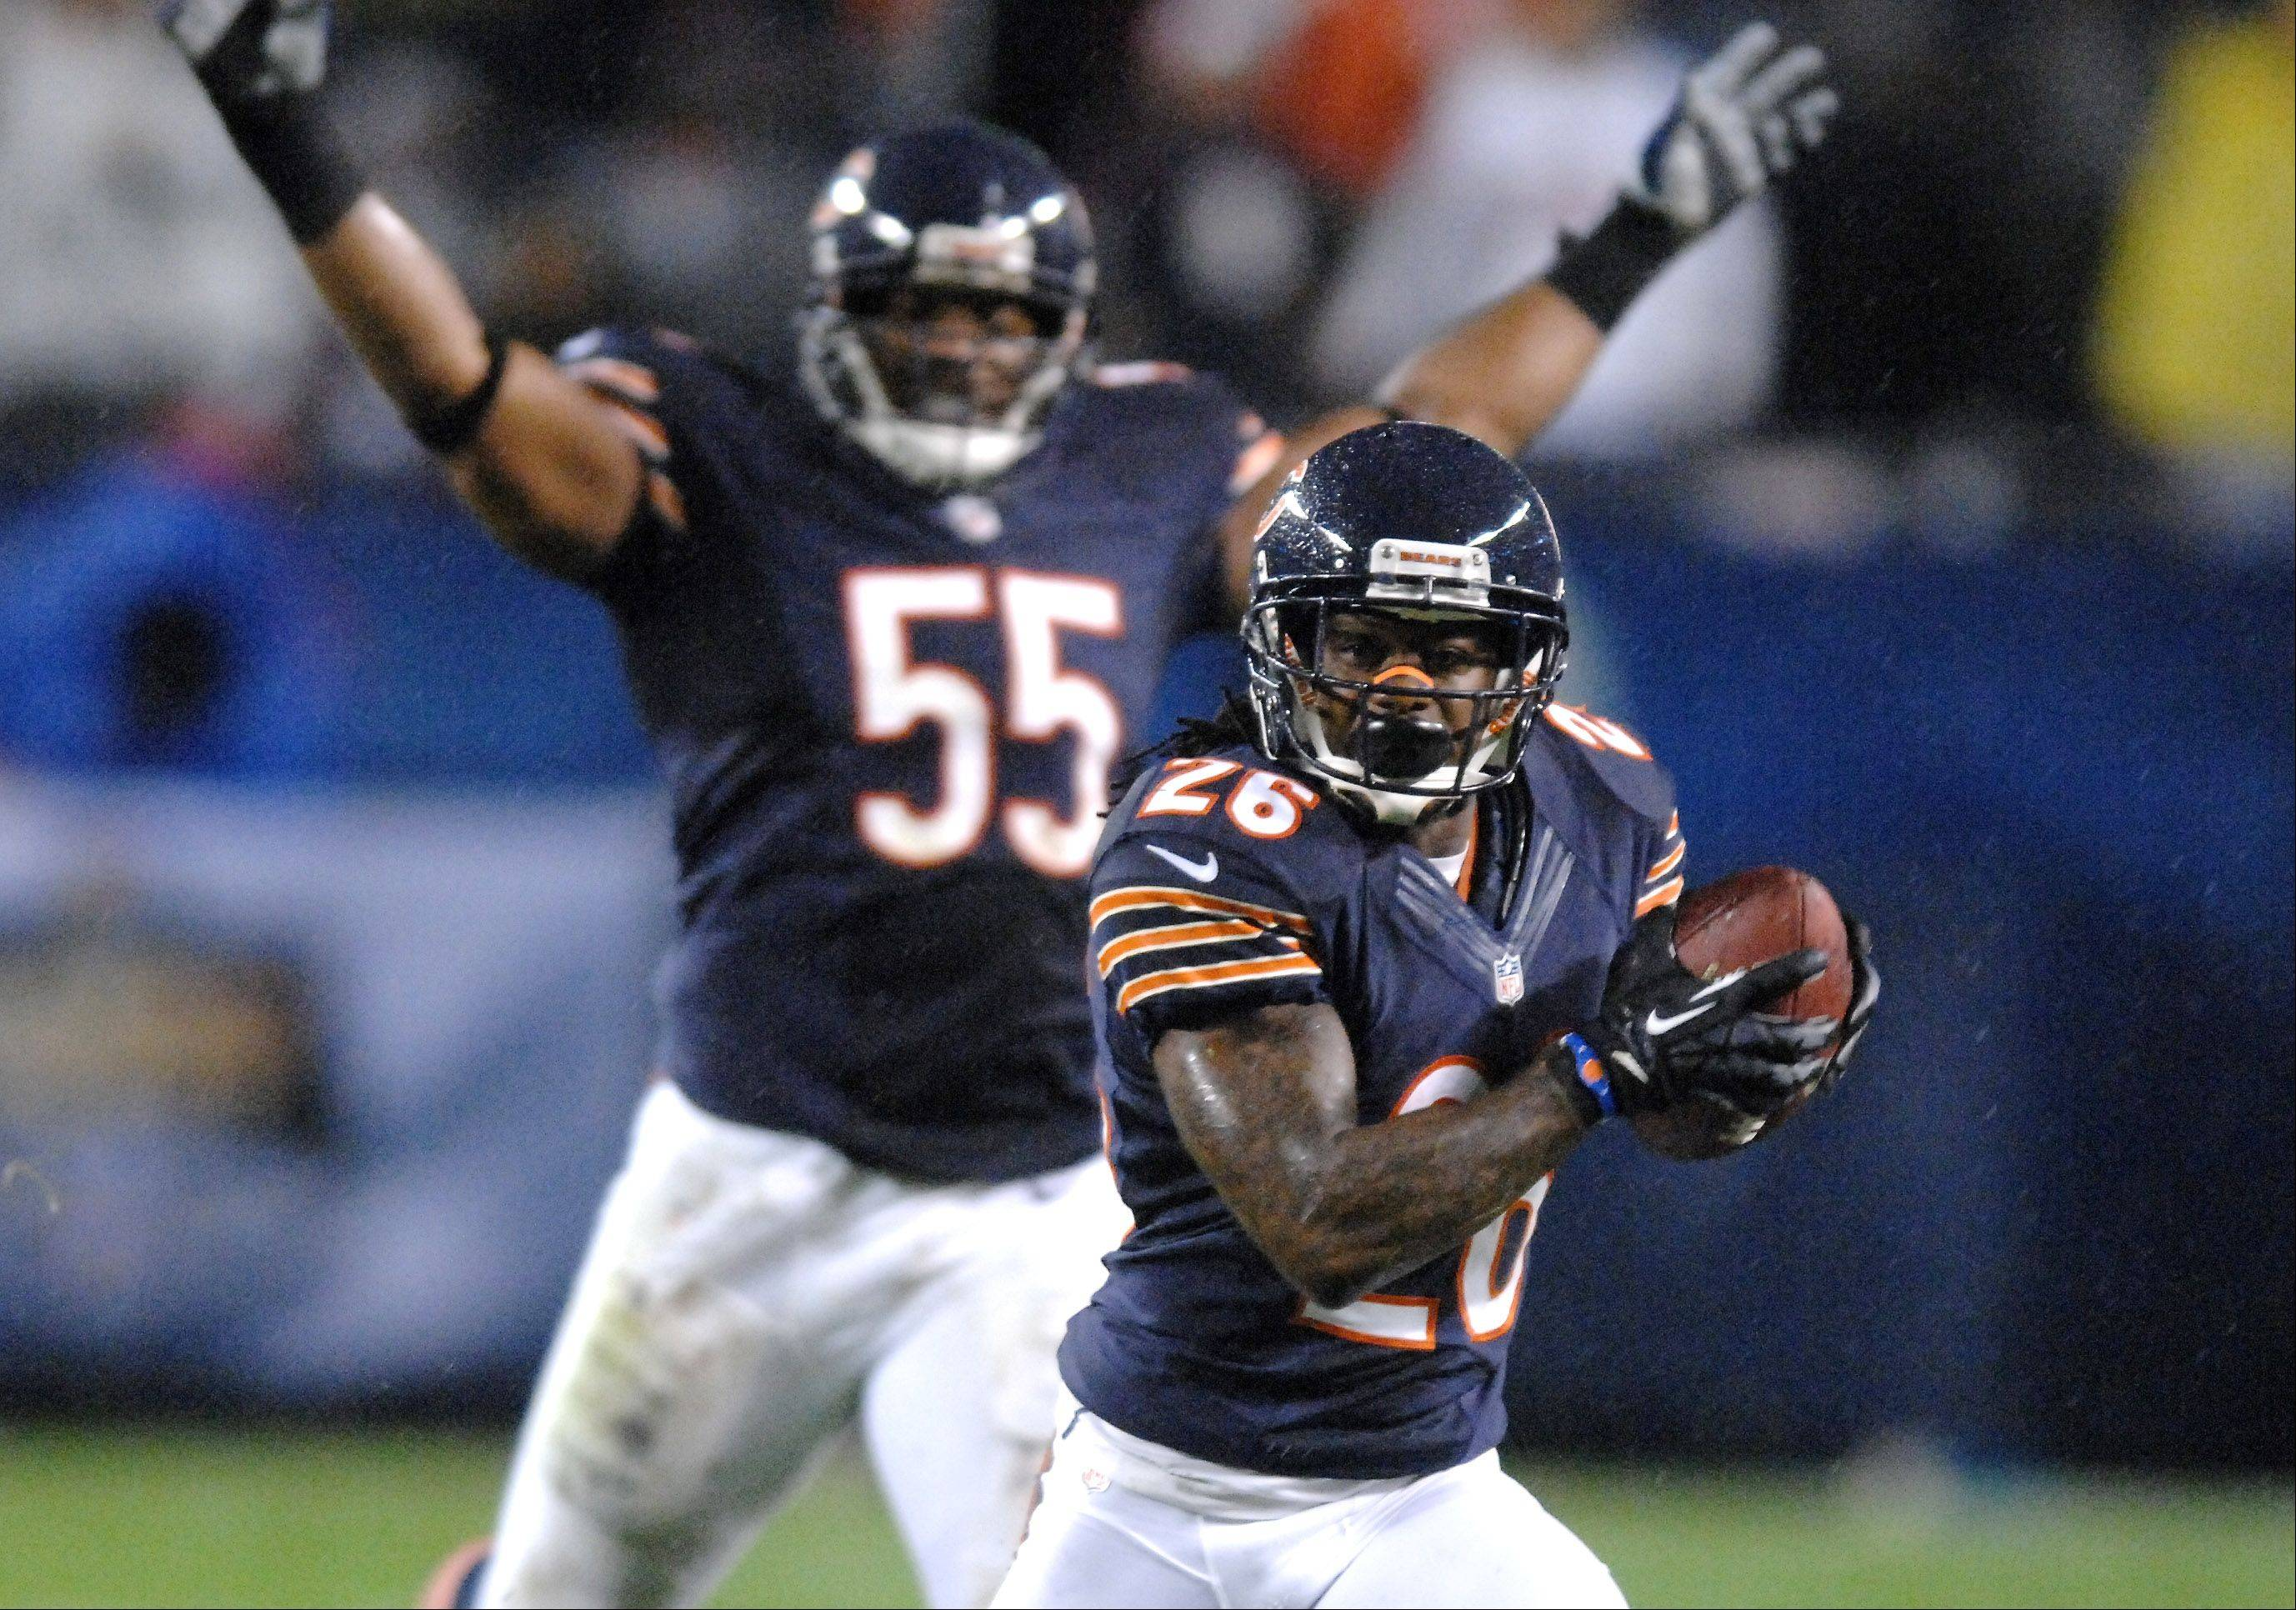 Chicago Bears outside linebacker Lance Briggs (55) celebrates in the background as Tim Jennings returns his first quarter interception deep into Texas territory.